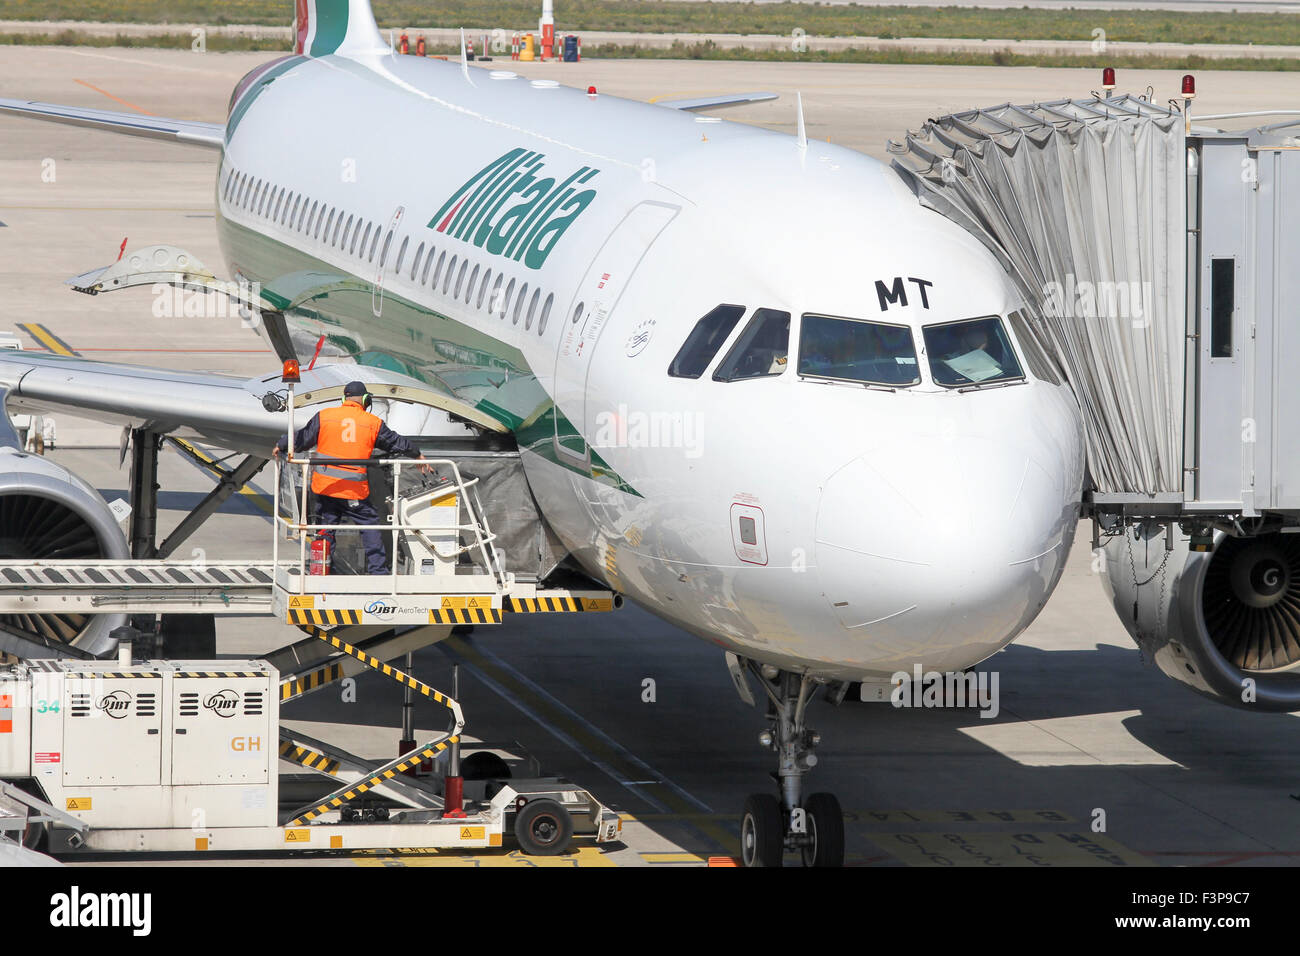 Alitalia, Passenger plane on the ground at at Linate airport, Milan, Italy. Ground crew are approaching the plane - Stock Image